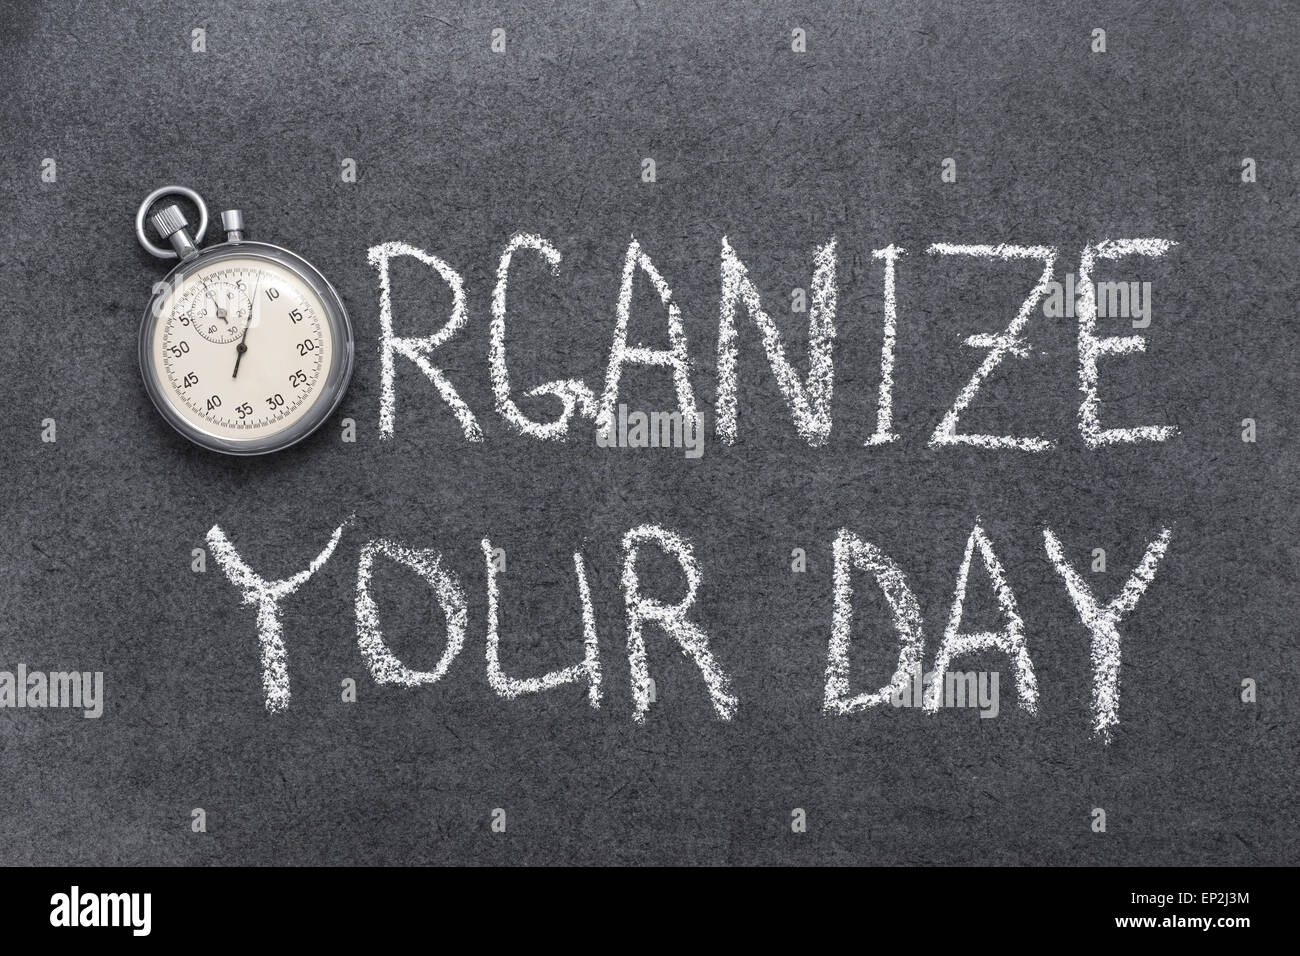 organize your day phrase handwritten on chalkboard with vintage precise stopwatch used instead of O - Stock Image